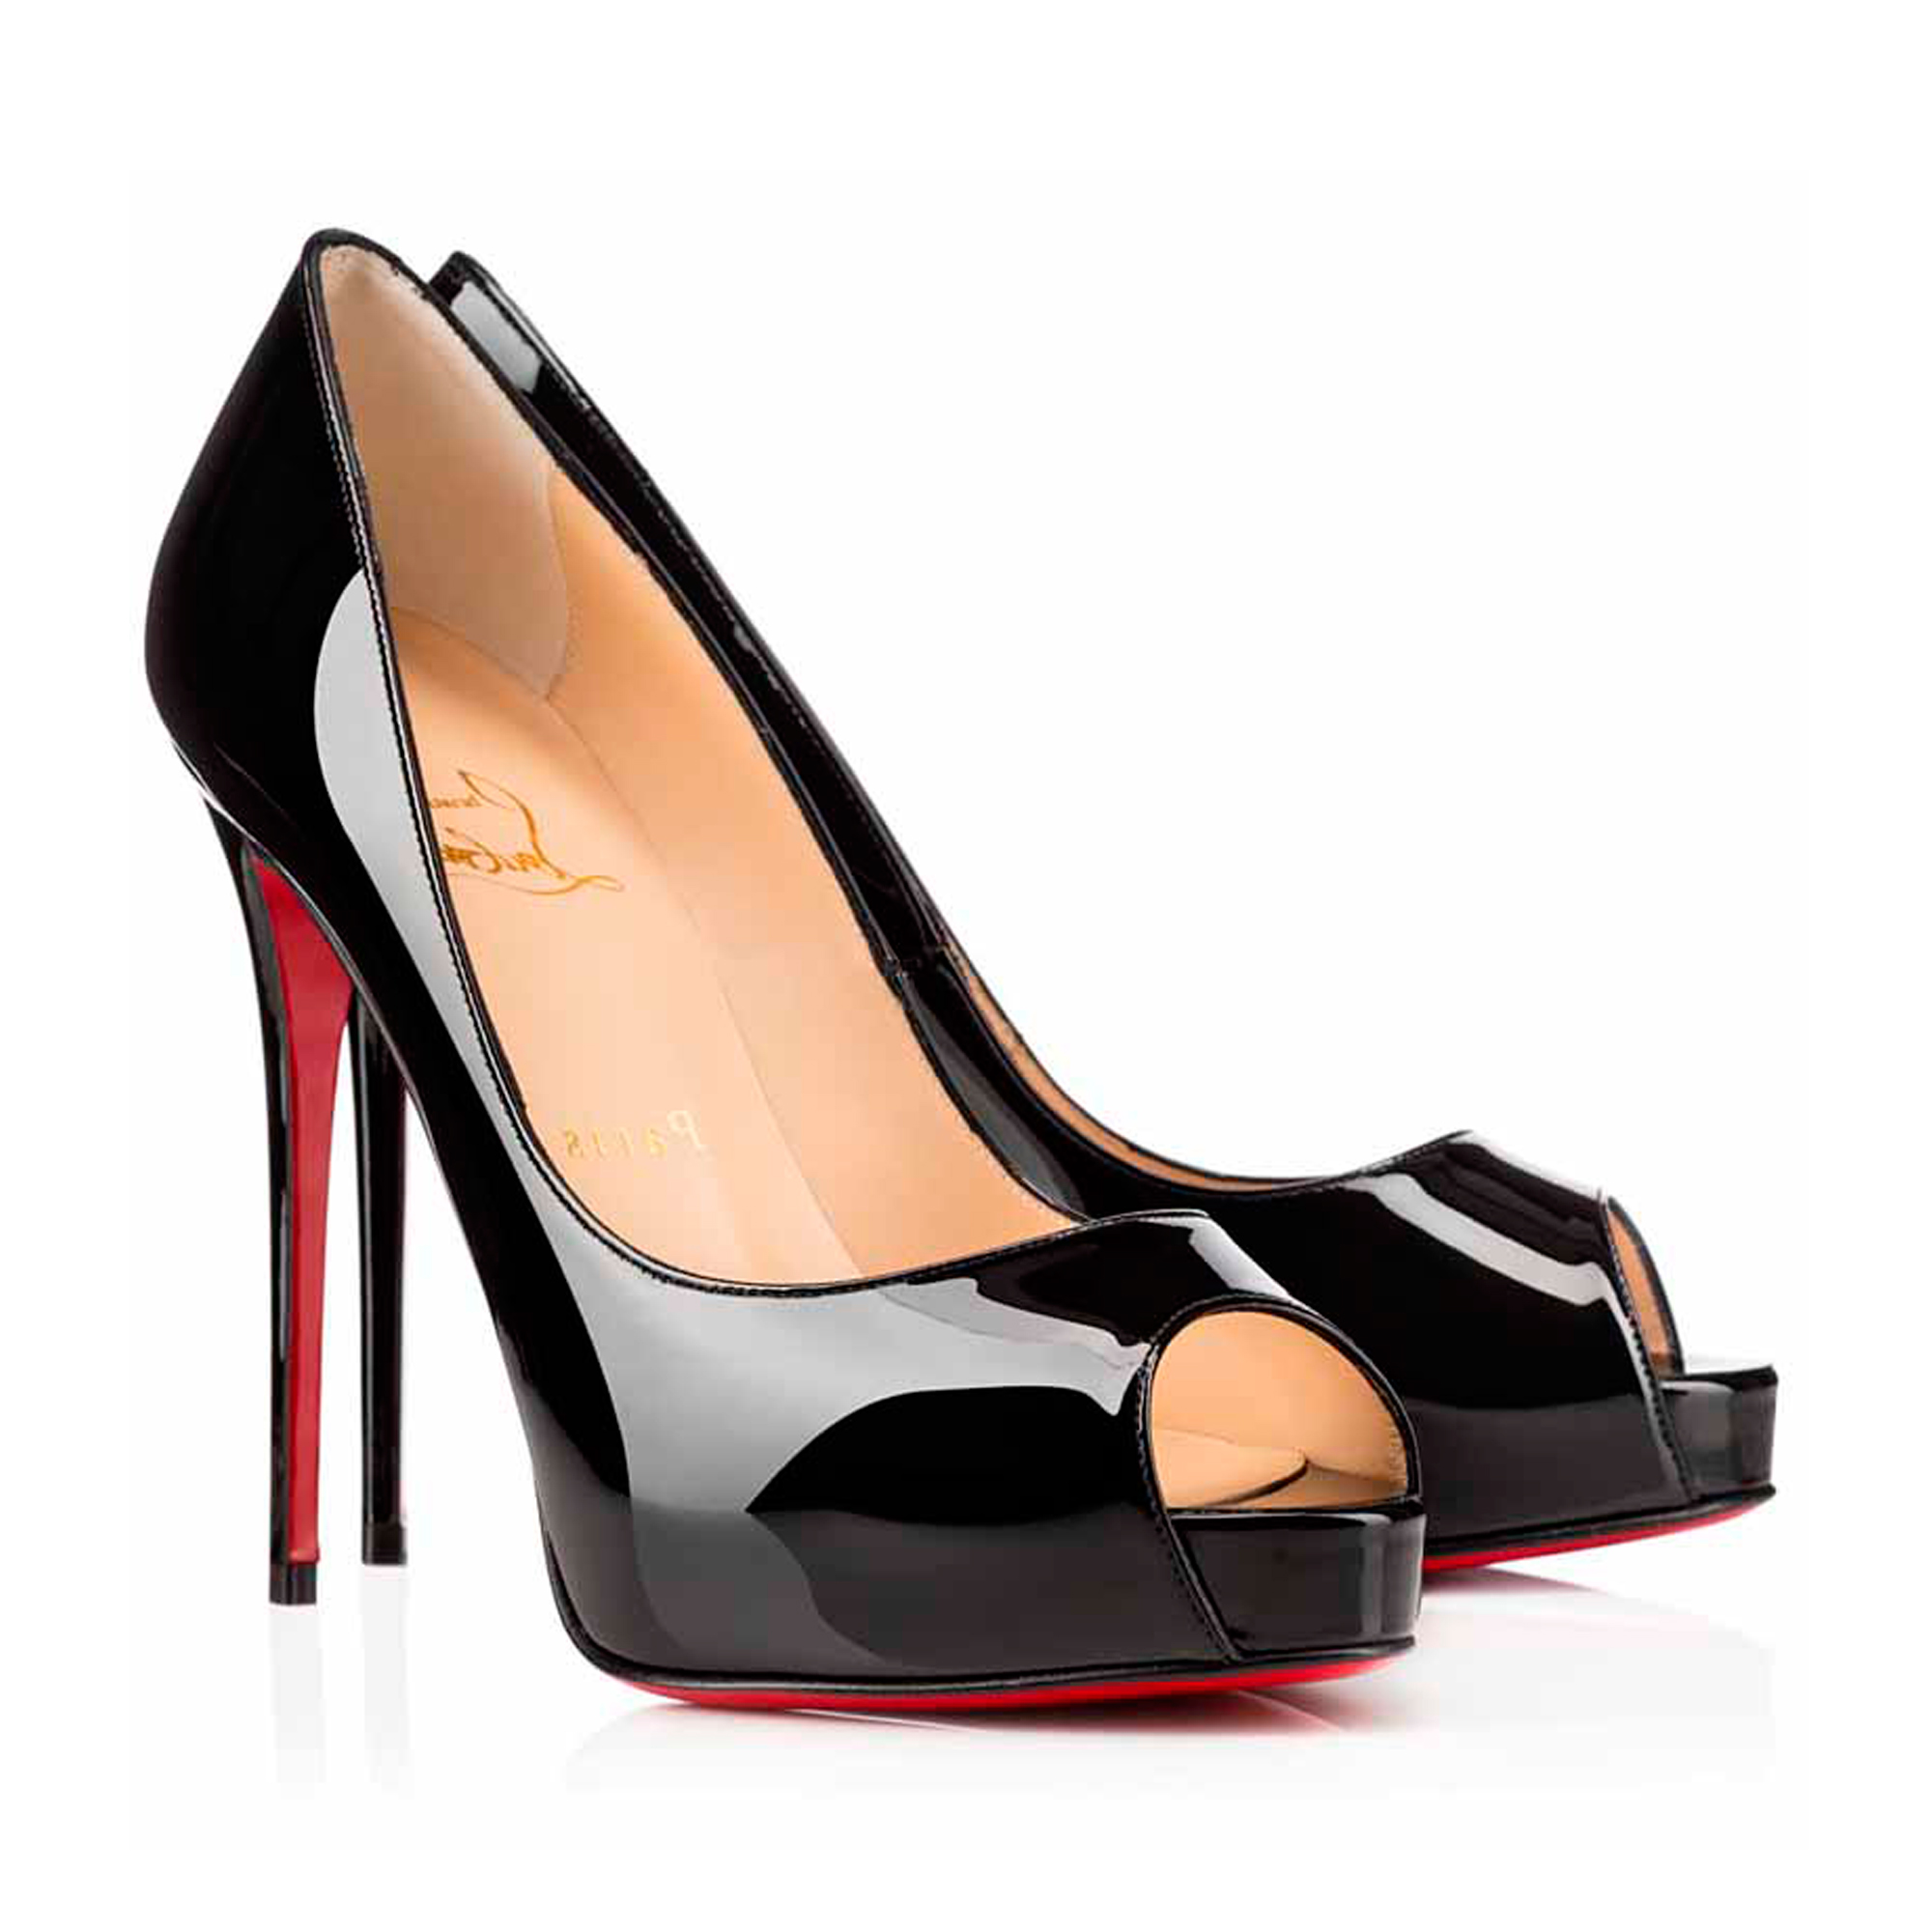 official photos 7afa6 b0e57 Christian Louboutin Very Prive patent leather pump